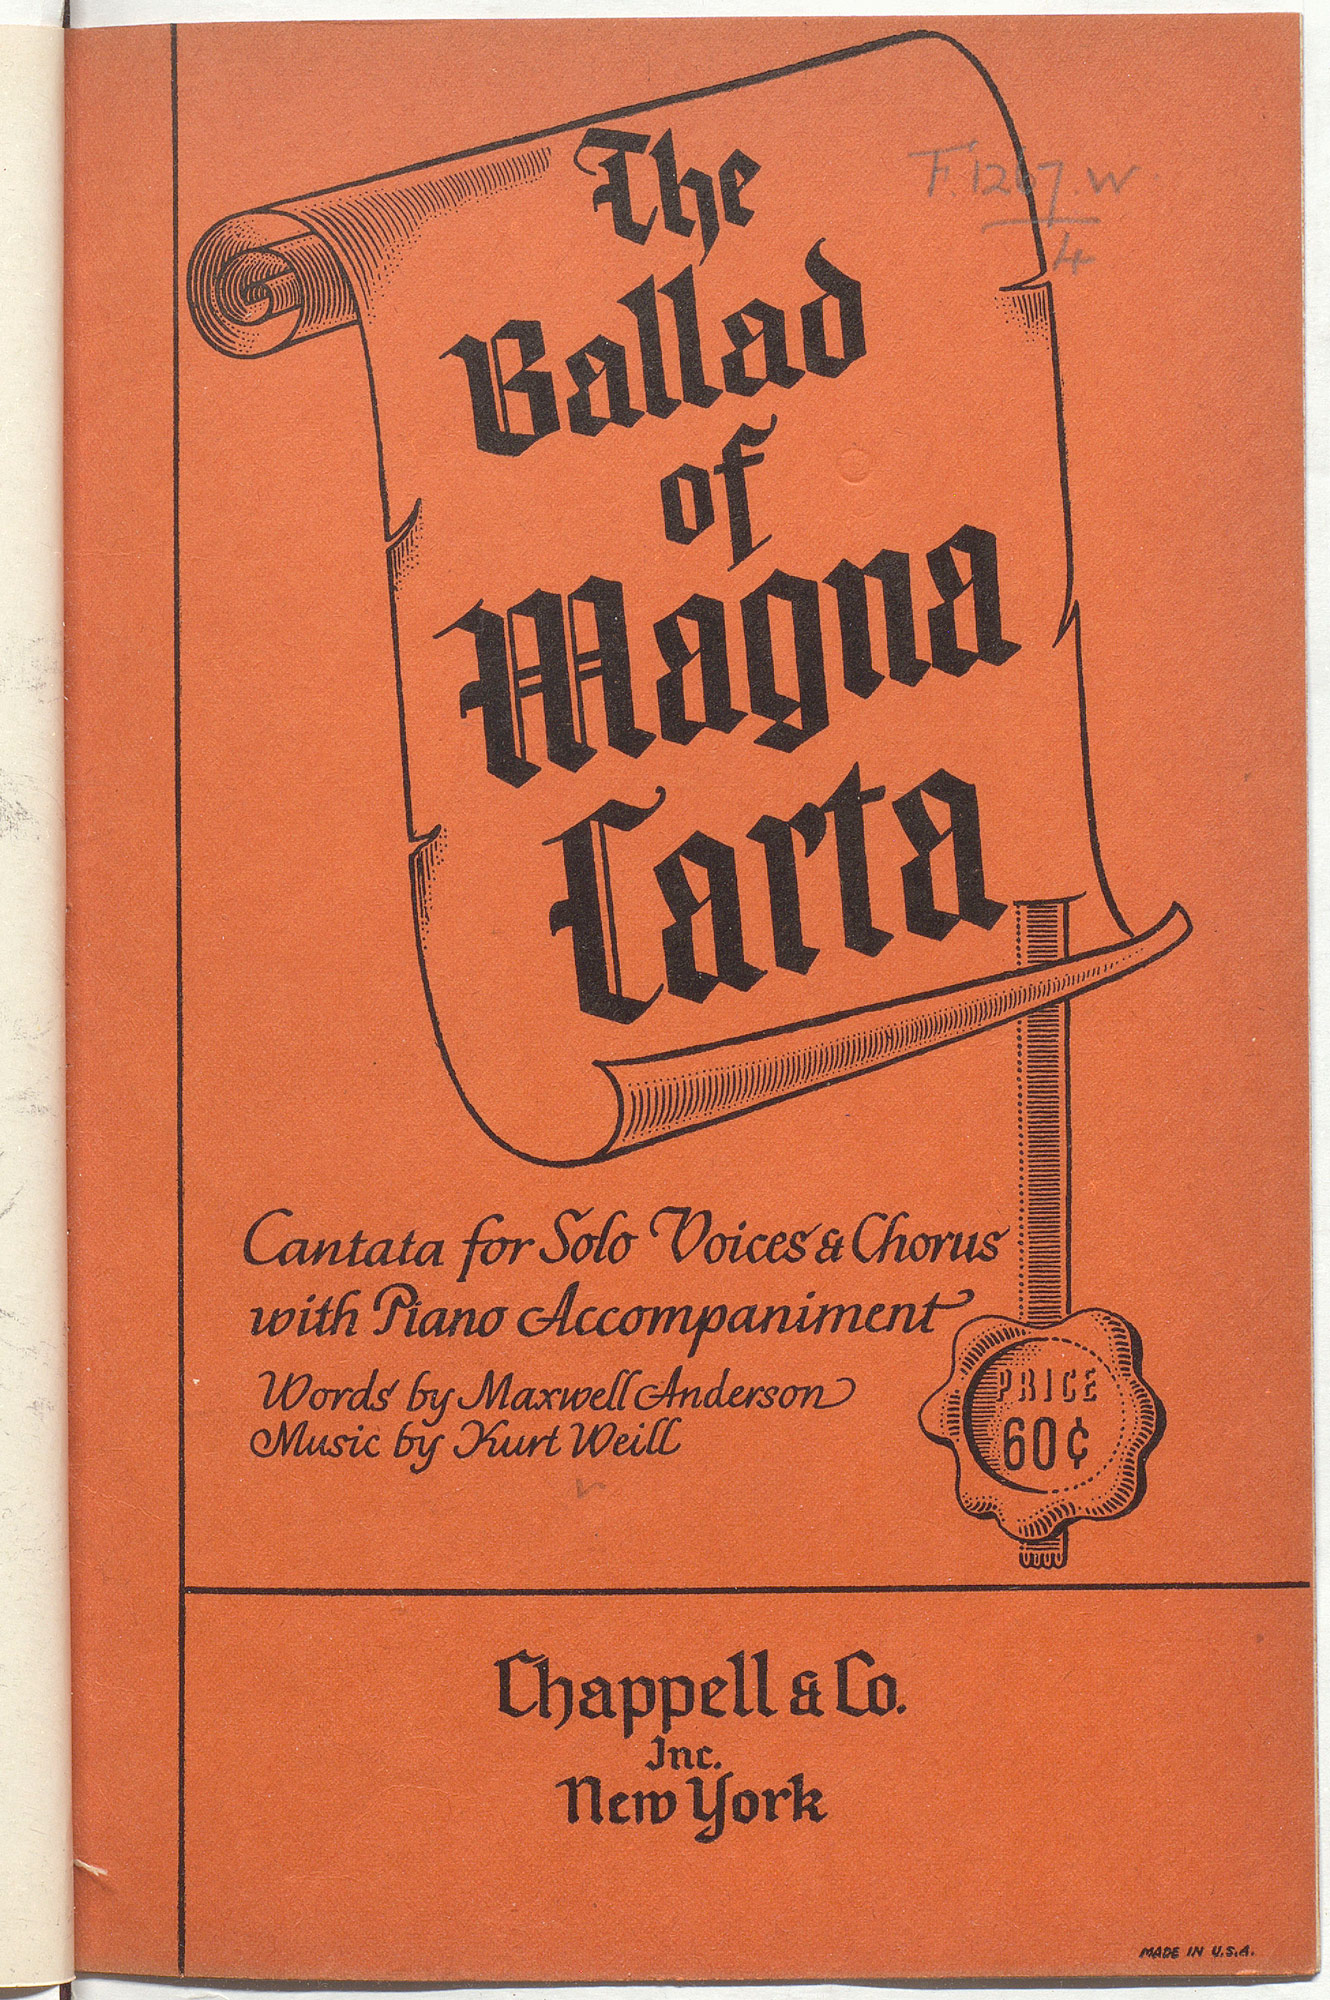 Score of The Ballad of Magna Carta